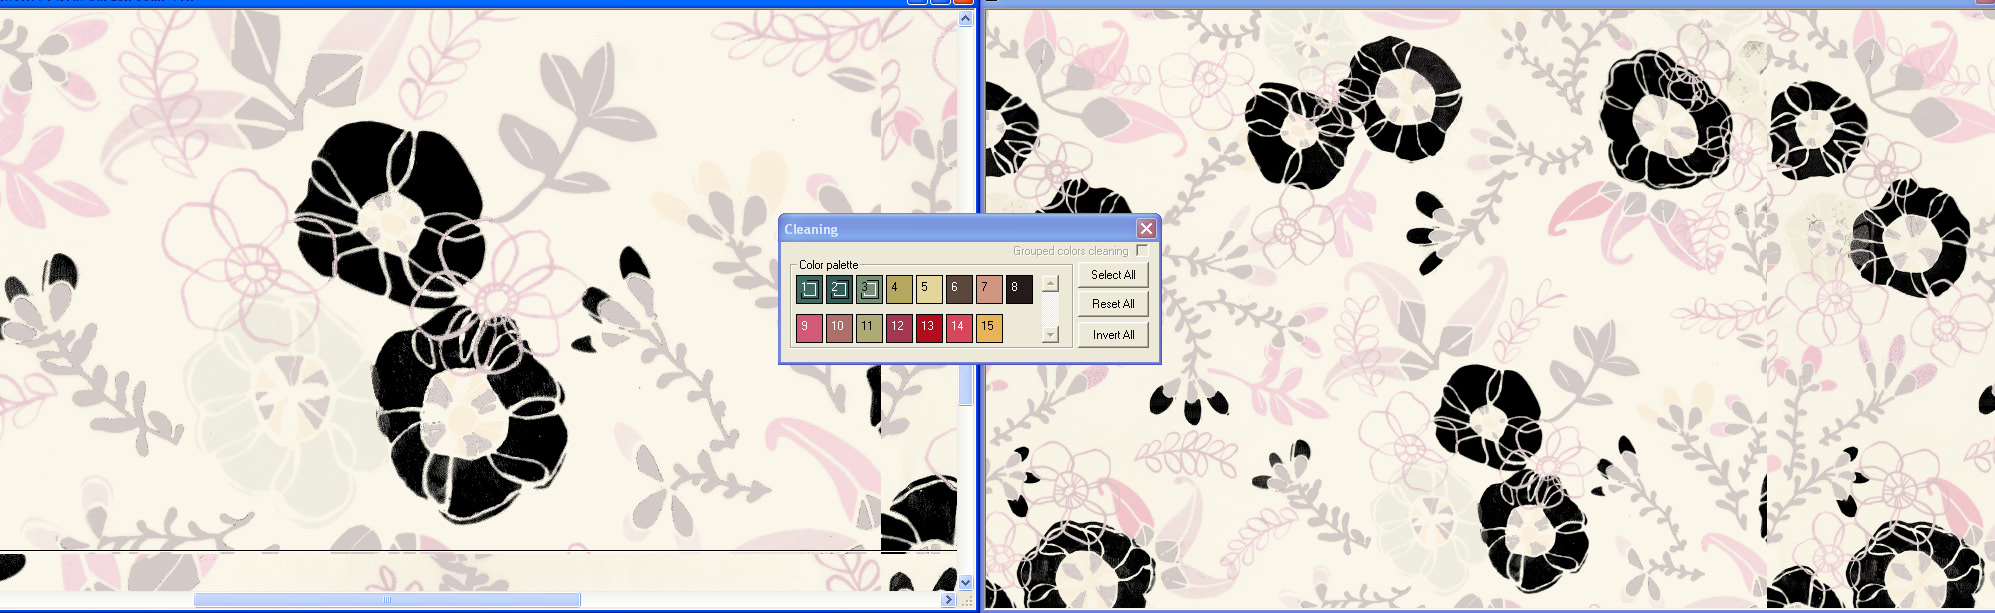 screen shot demonstrating how a black and white film view assists with color position controls